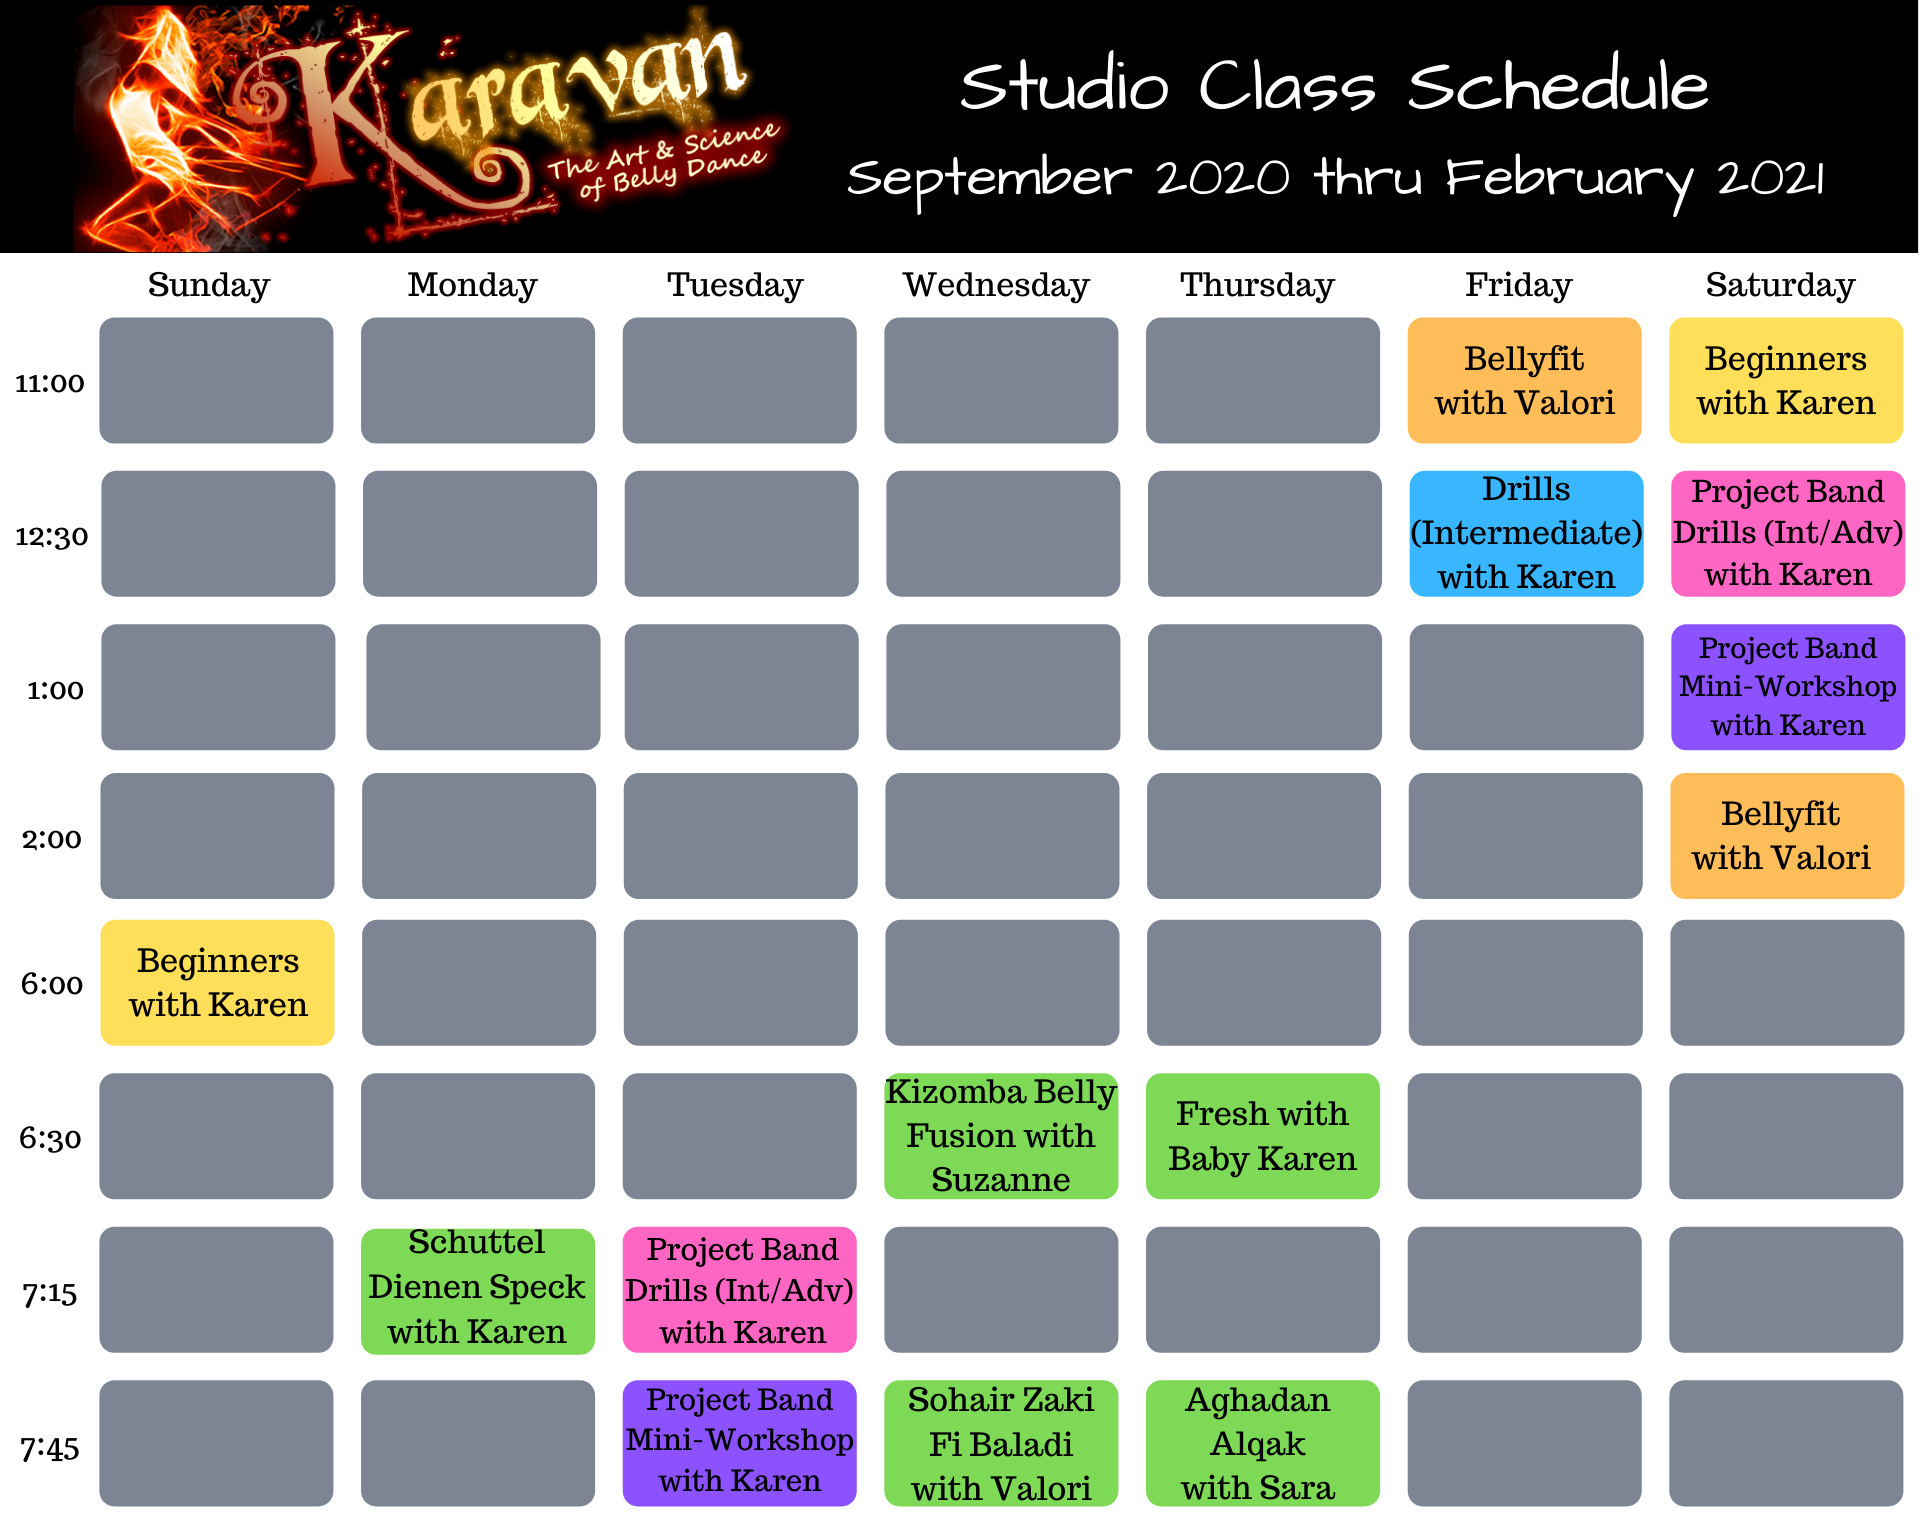 Karavan's September 2020 Studio Schedule